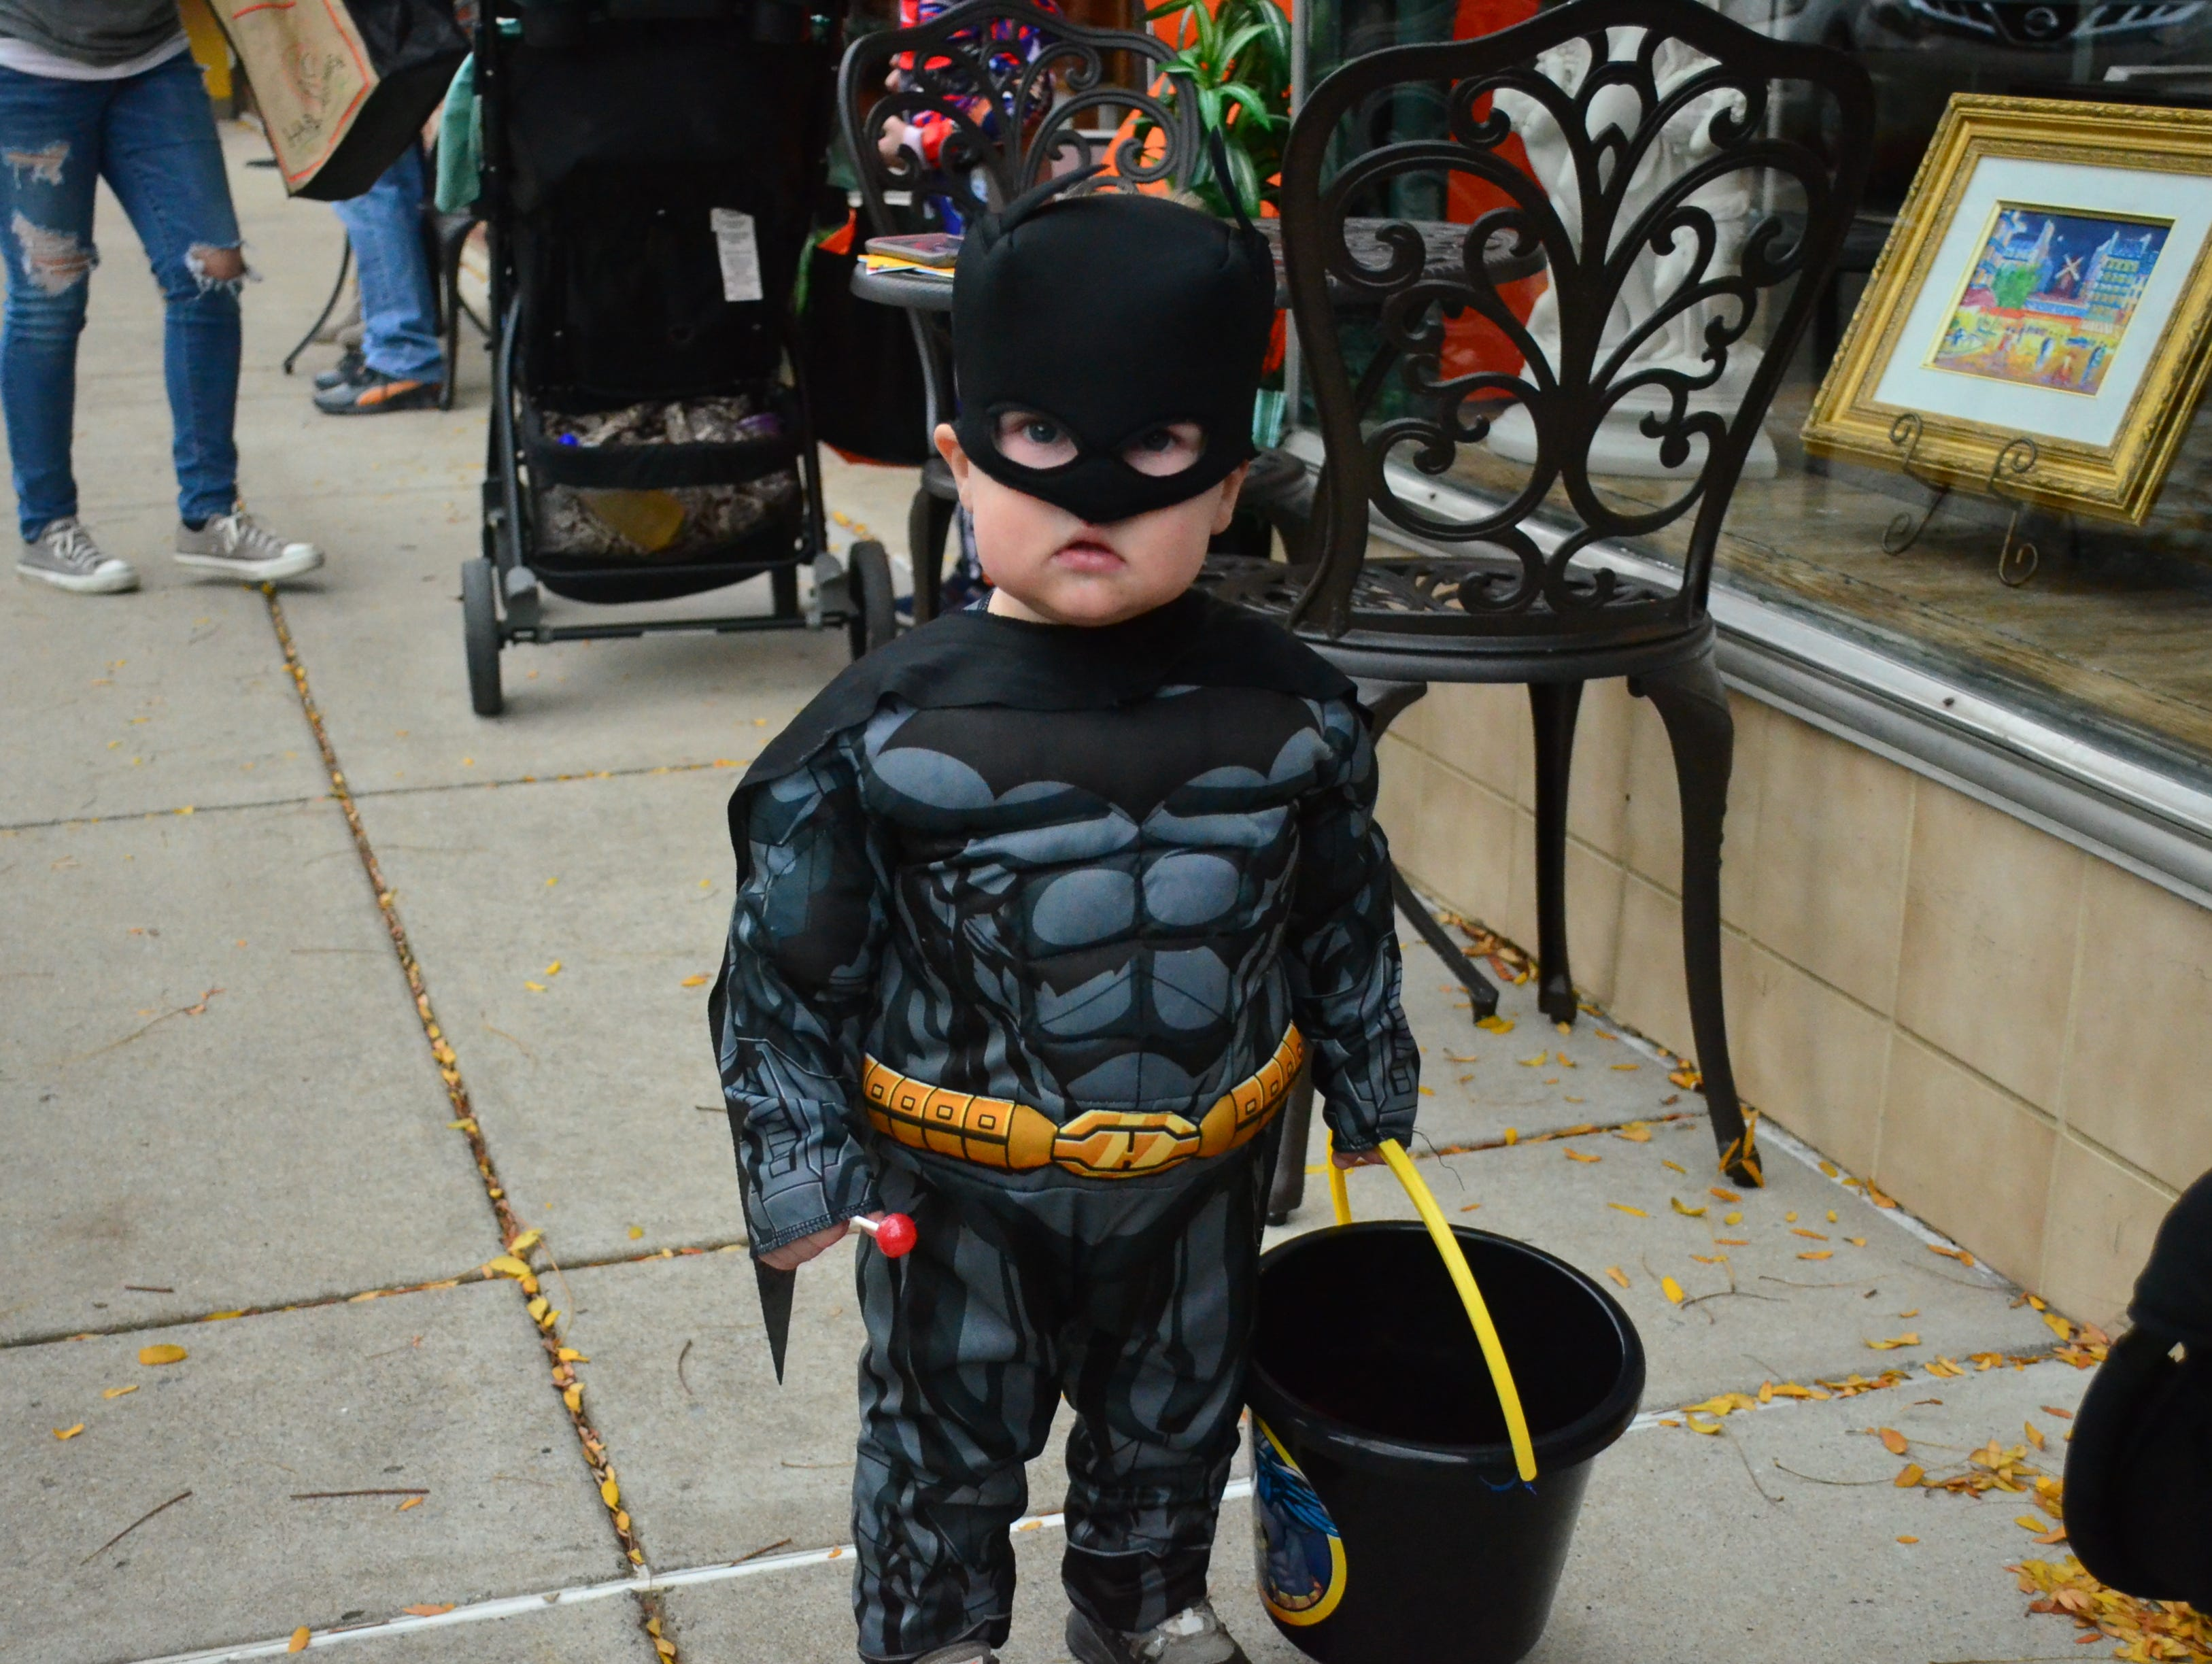 Gallatin's Trick-or-Treat on the Square was a chance for kids to showcase their creative costumes on Wednesday, Oct. 31, 2018.